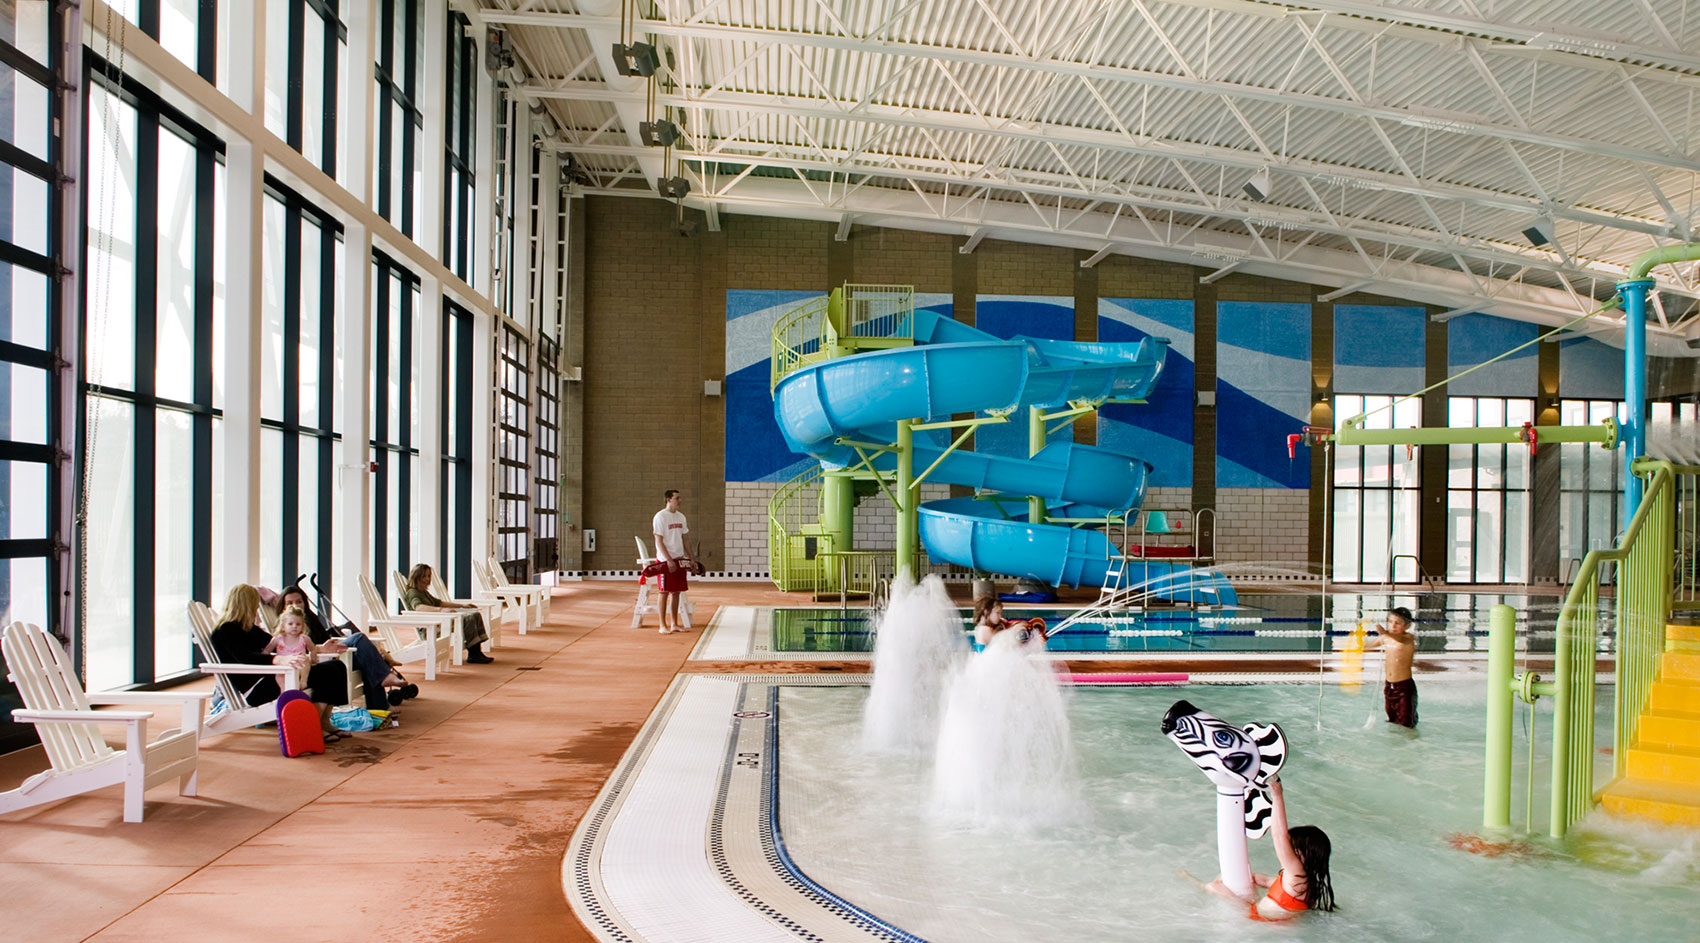 Centennial recreation center noll and tam - Centennial swimming pool richmond hill ...